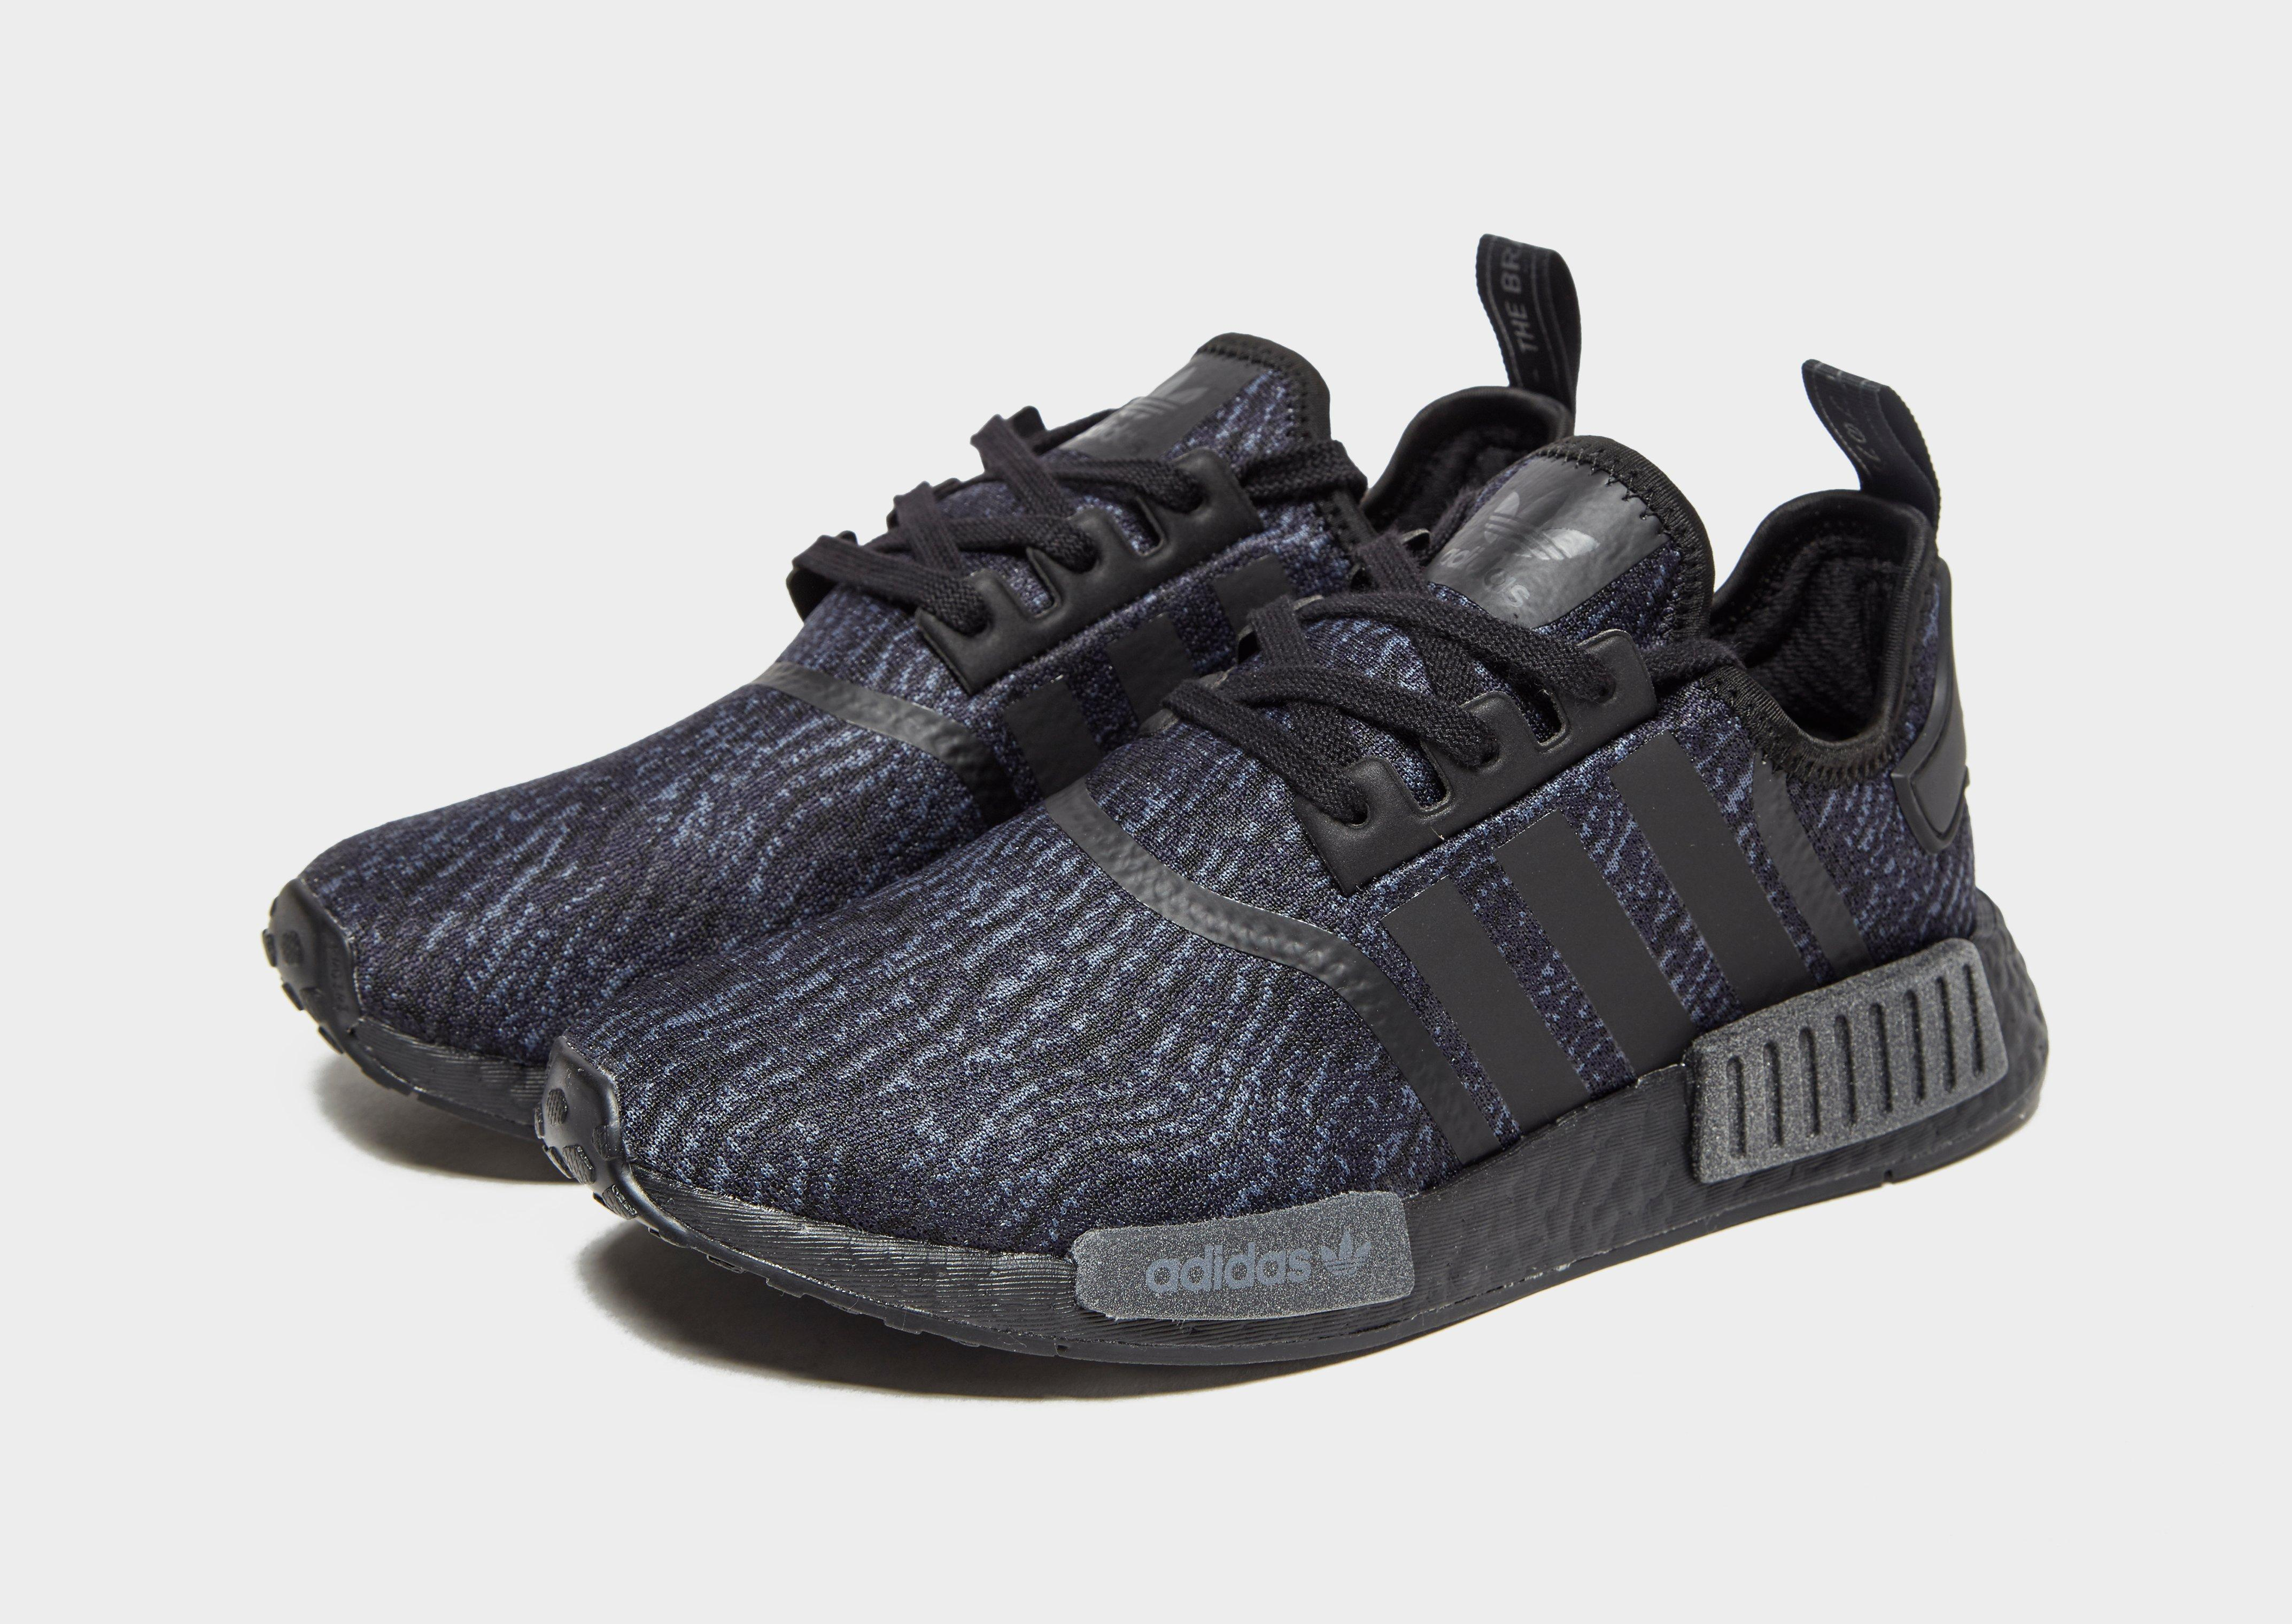 adidas Originals Nmd R1 in Black for Men - Lyst dfd4aad9a